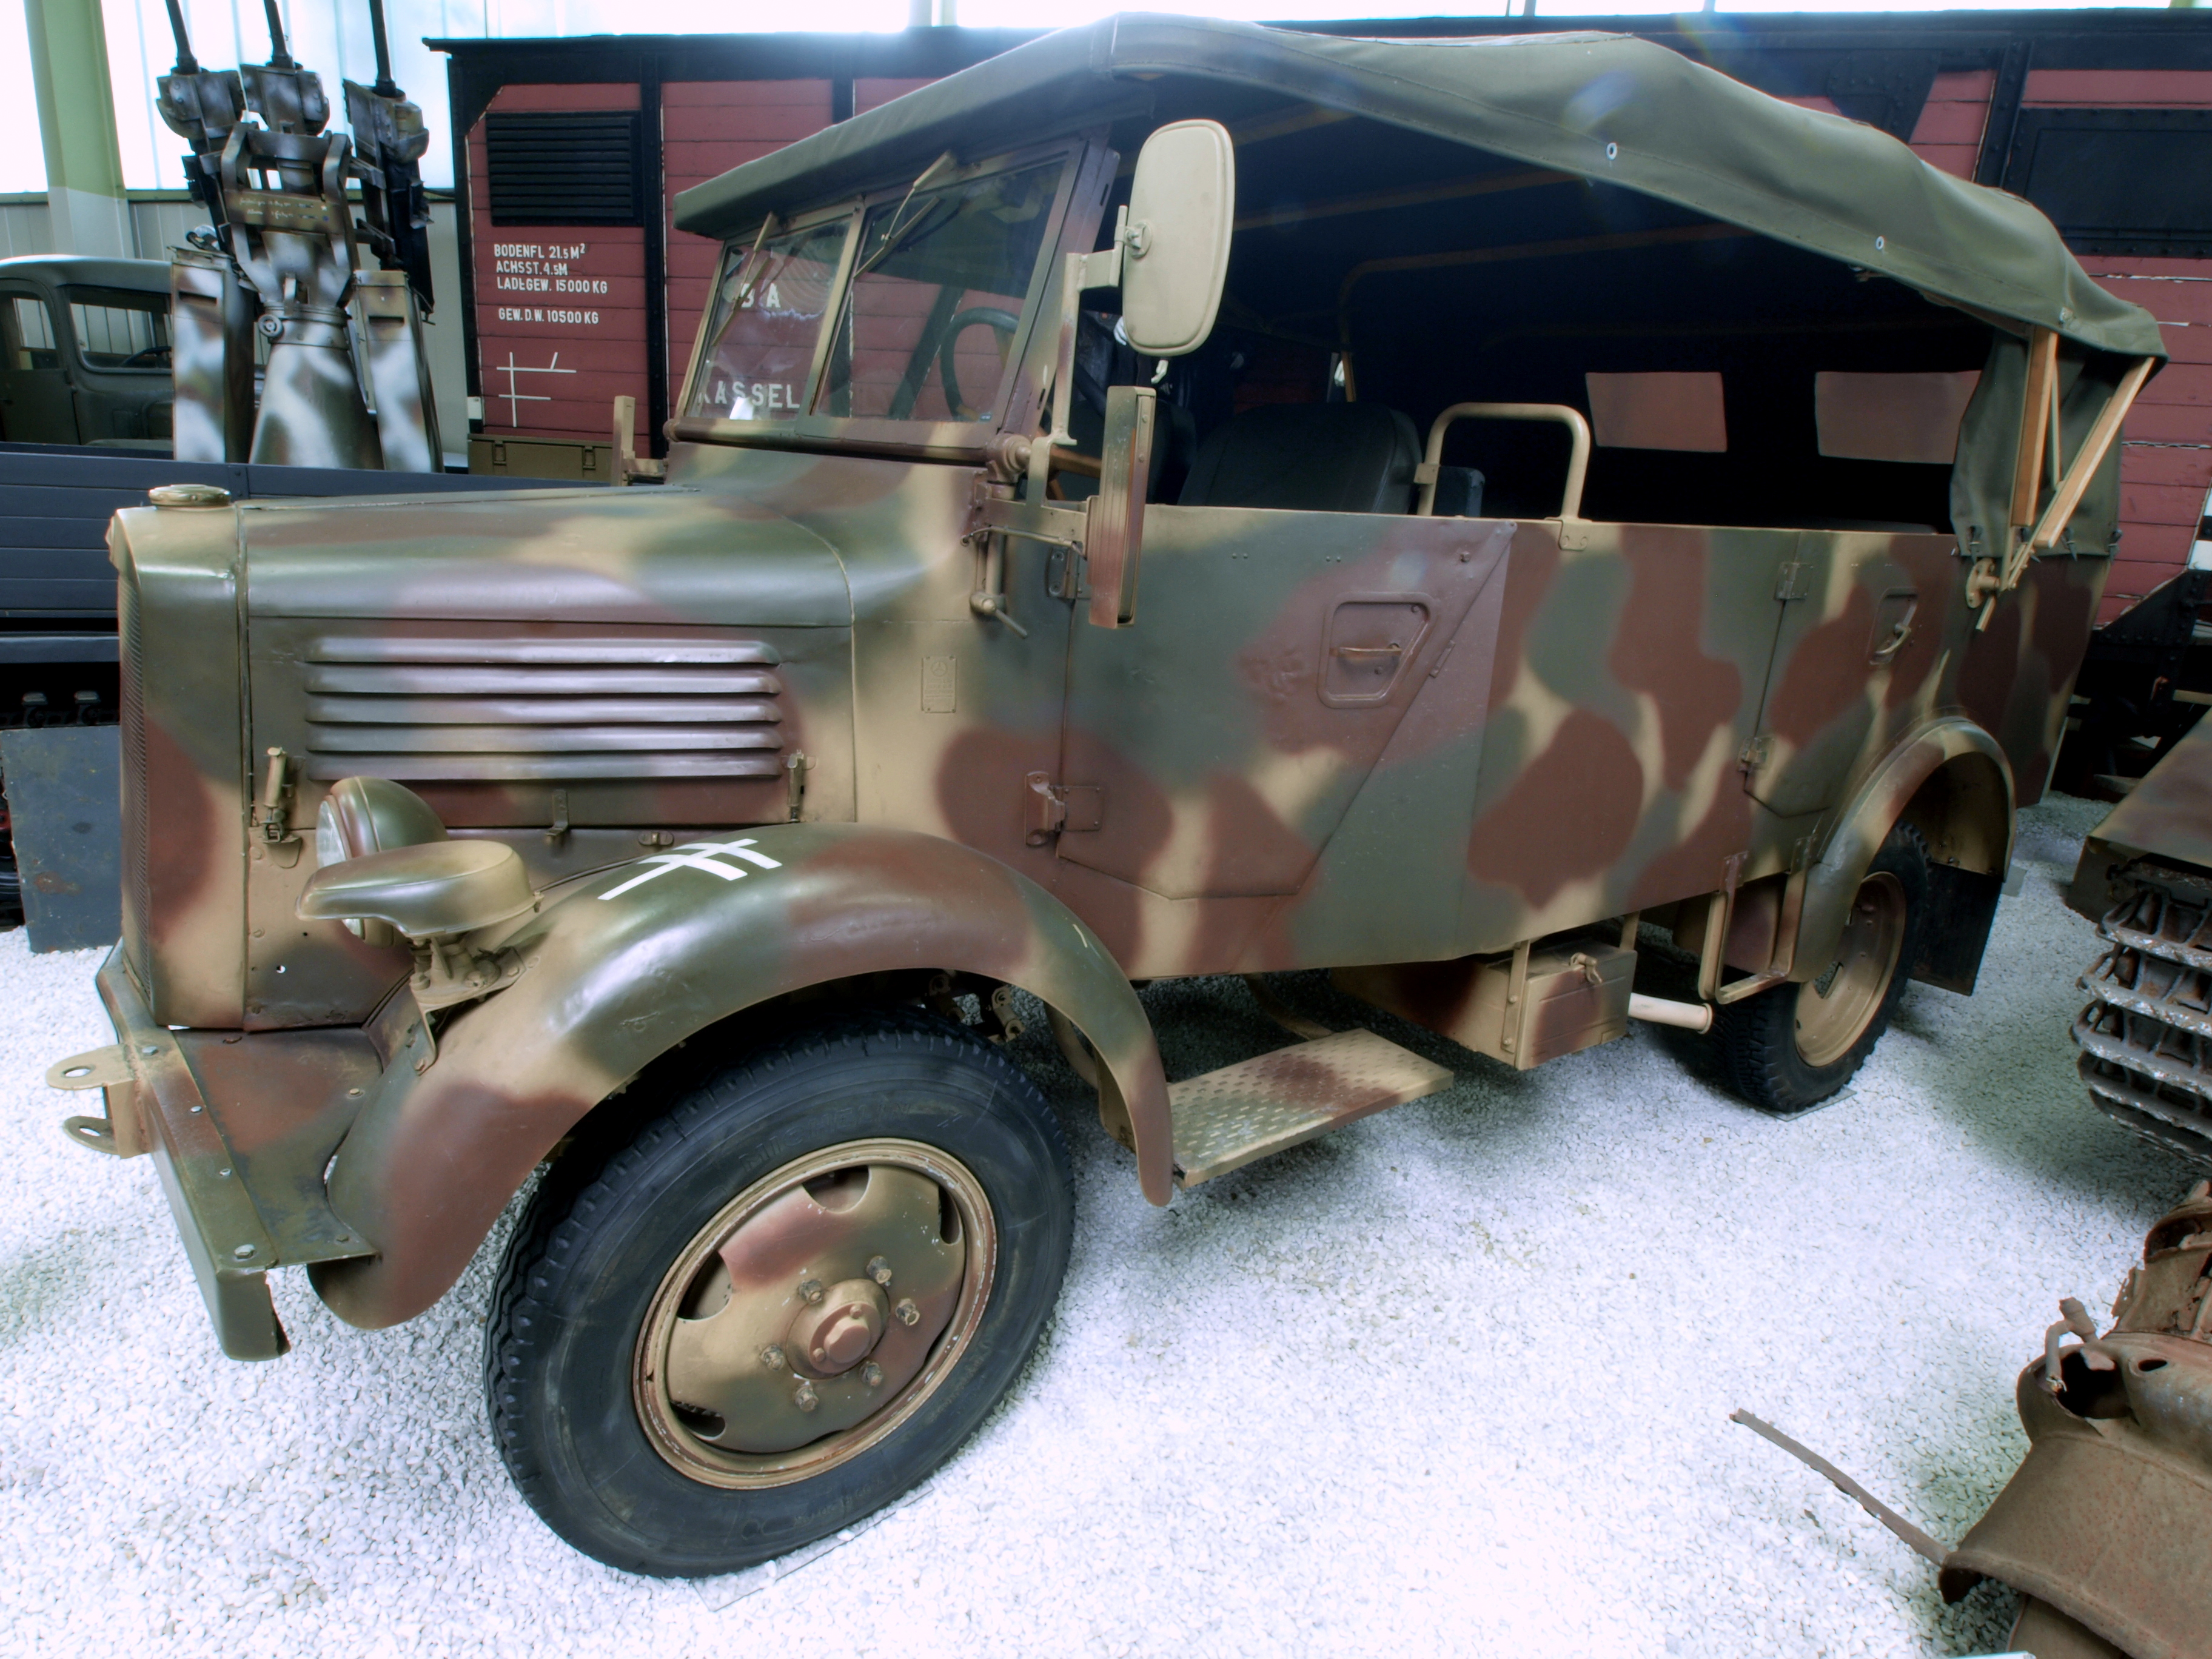 file:mercedes benz l 1500 a pic3 - wikimedia commons